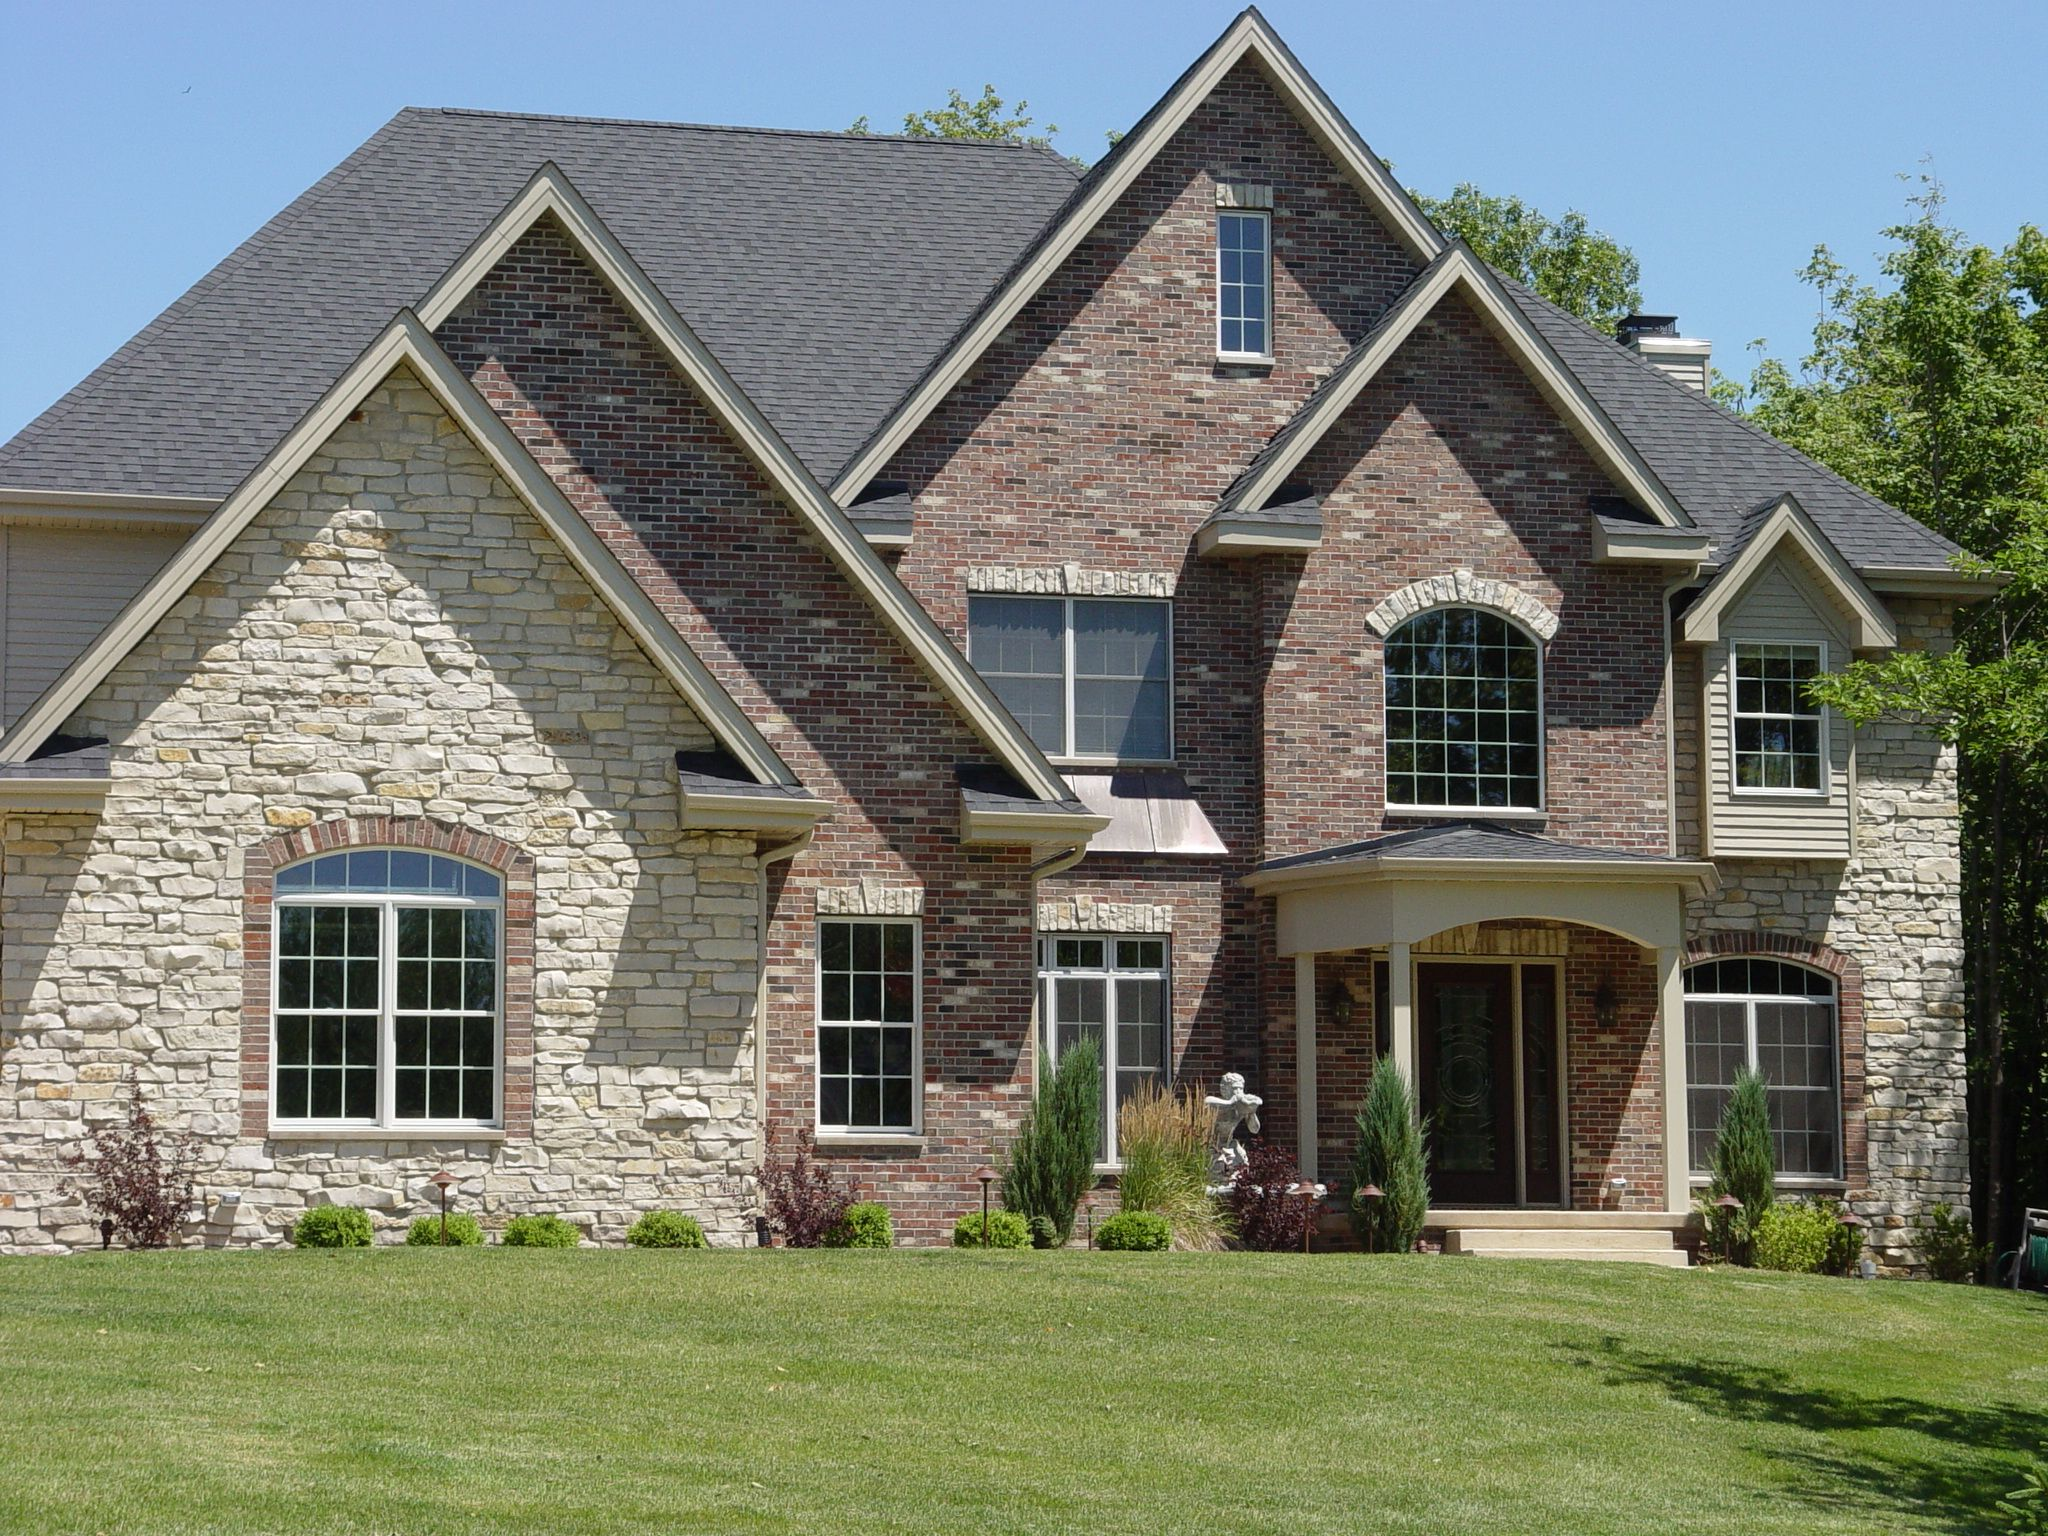 The Classic American Home Red Brick And Stone Lake Houses Exterior House Exterior Traditional House